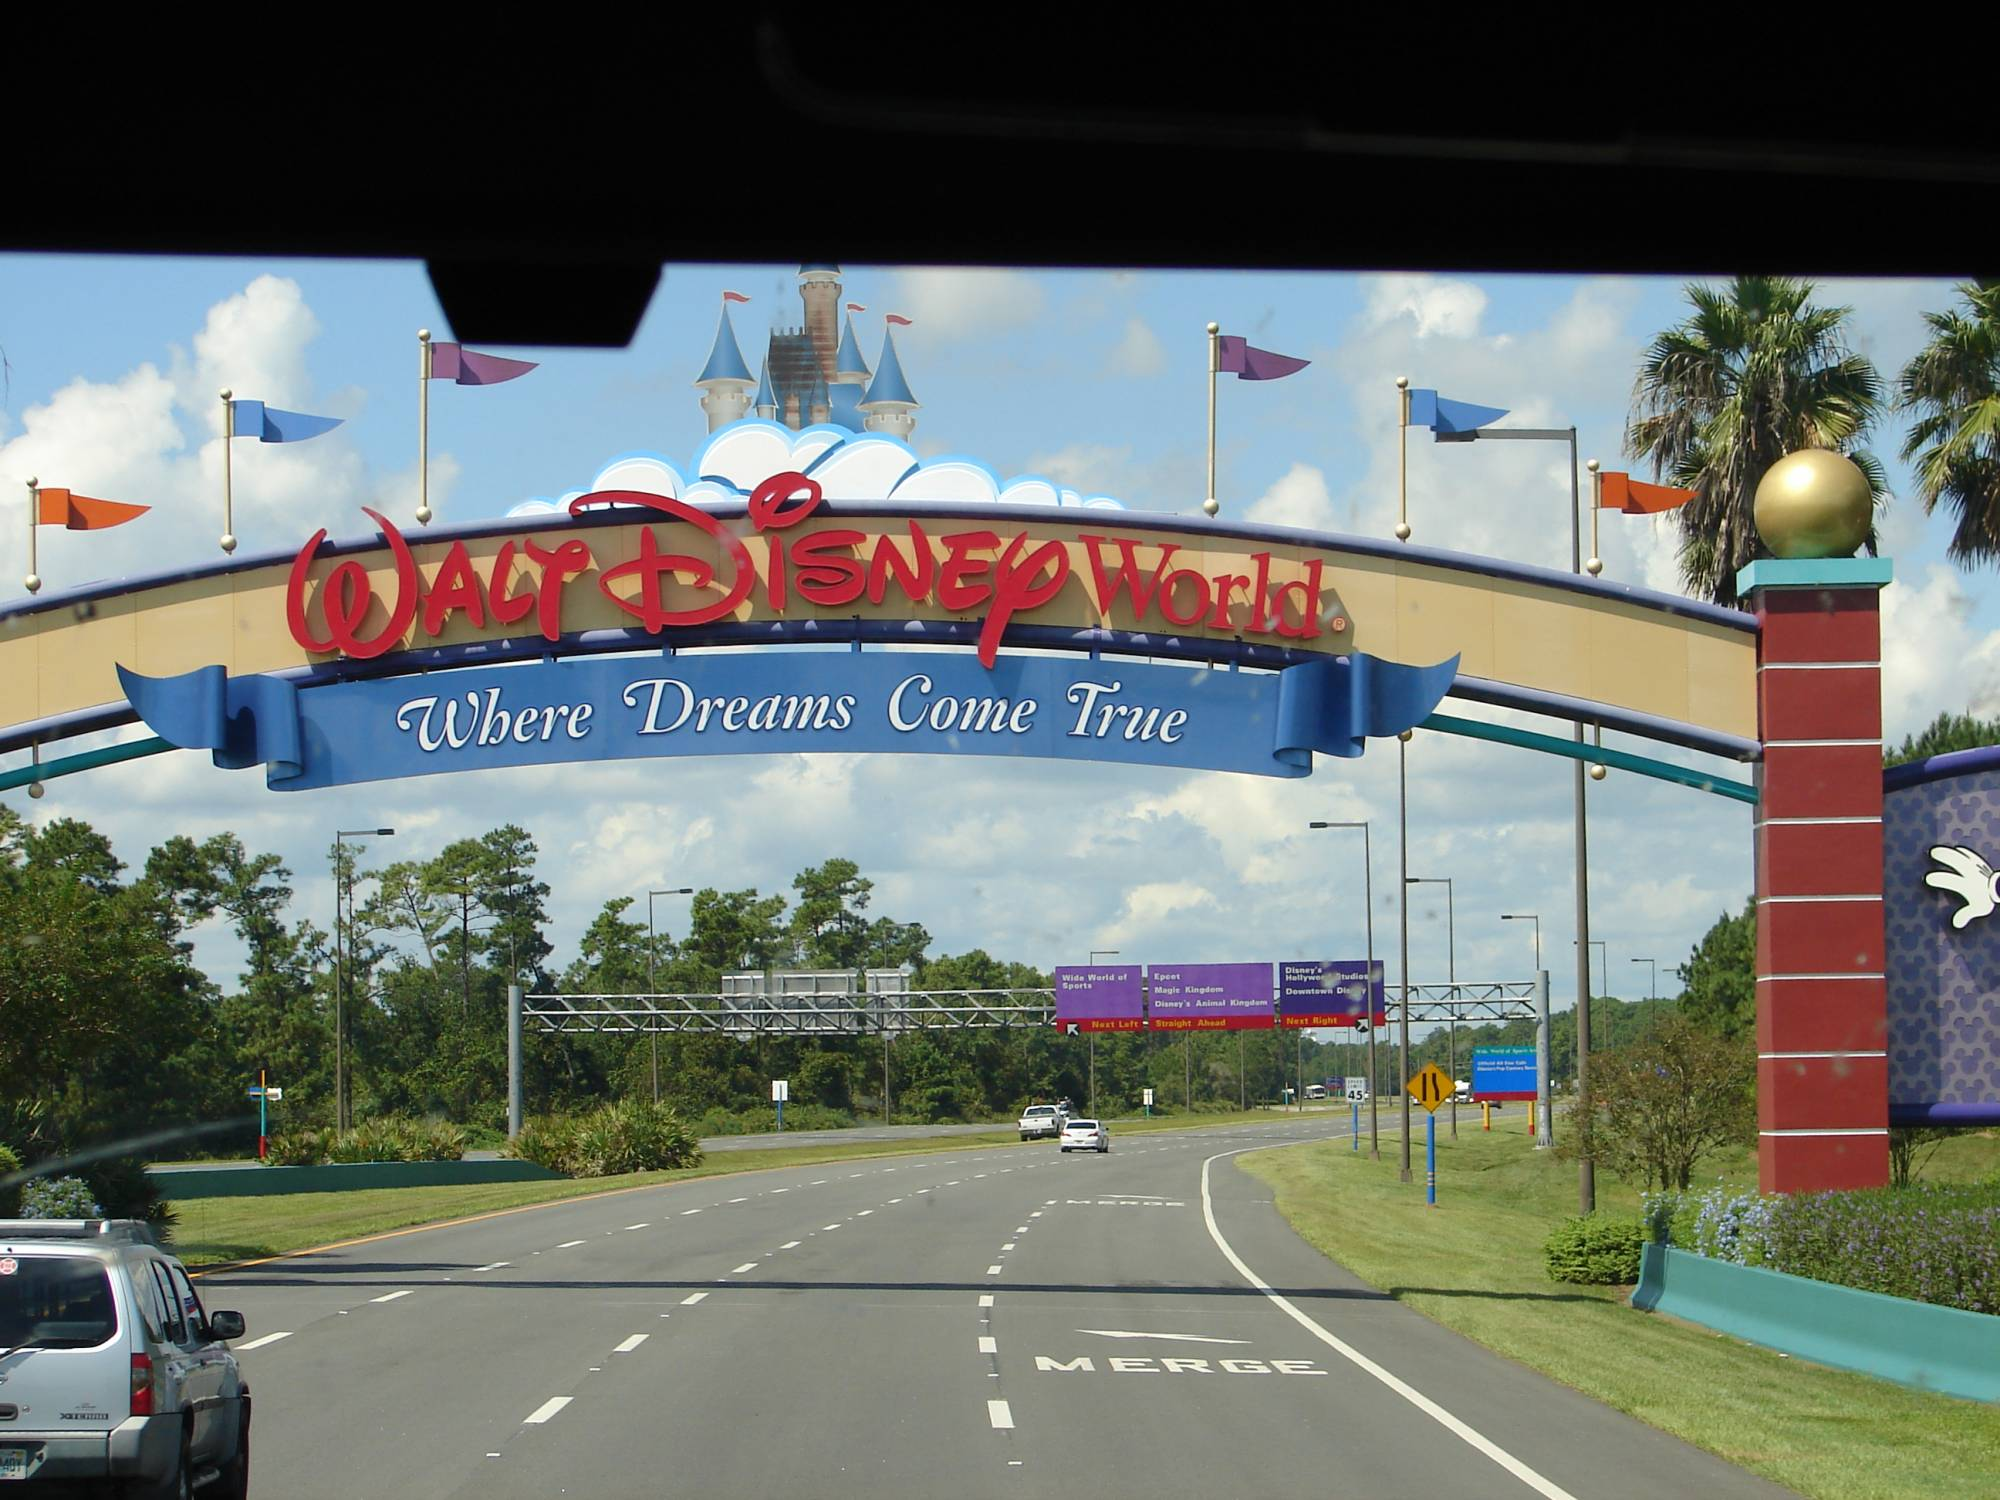 Already a Disneyland expert? Get help planning a trip to Walt Disney World! |PassPorter.com